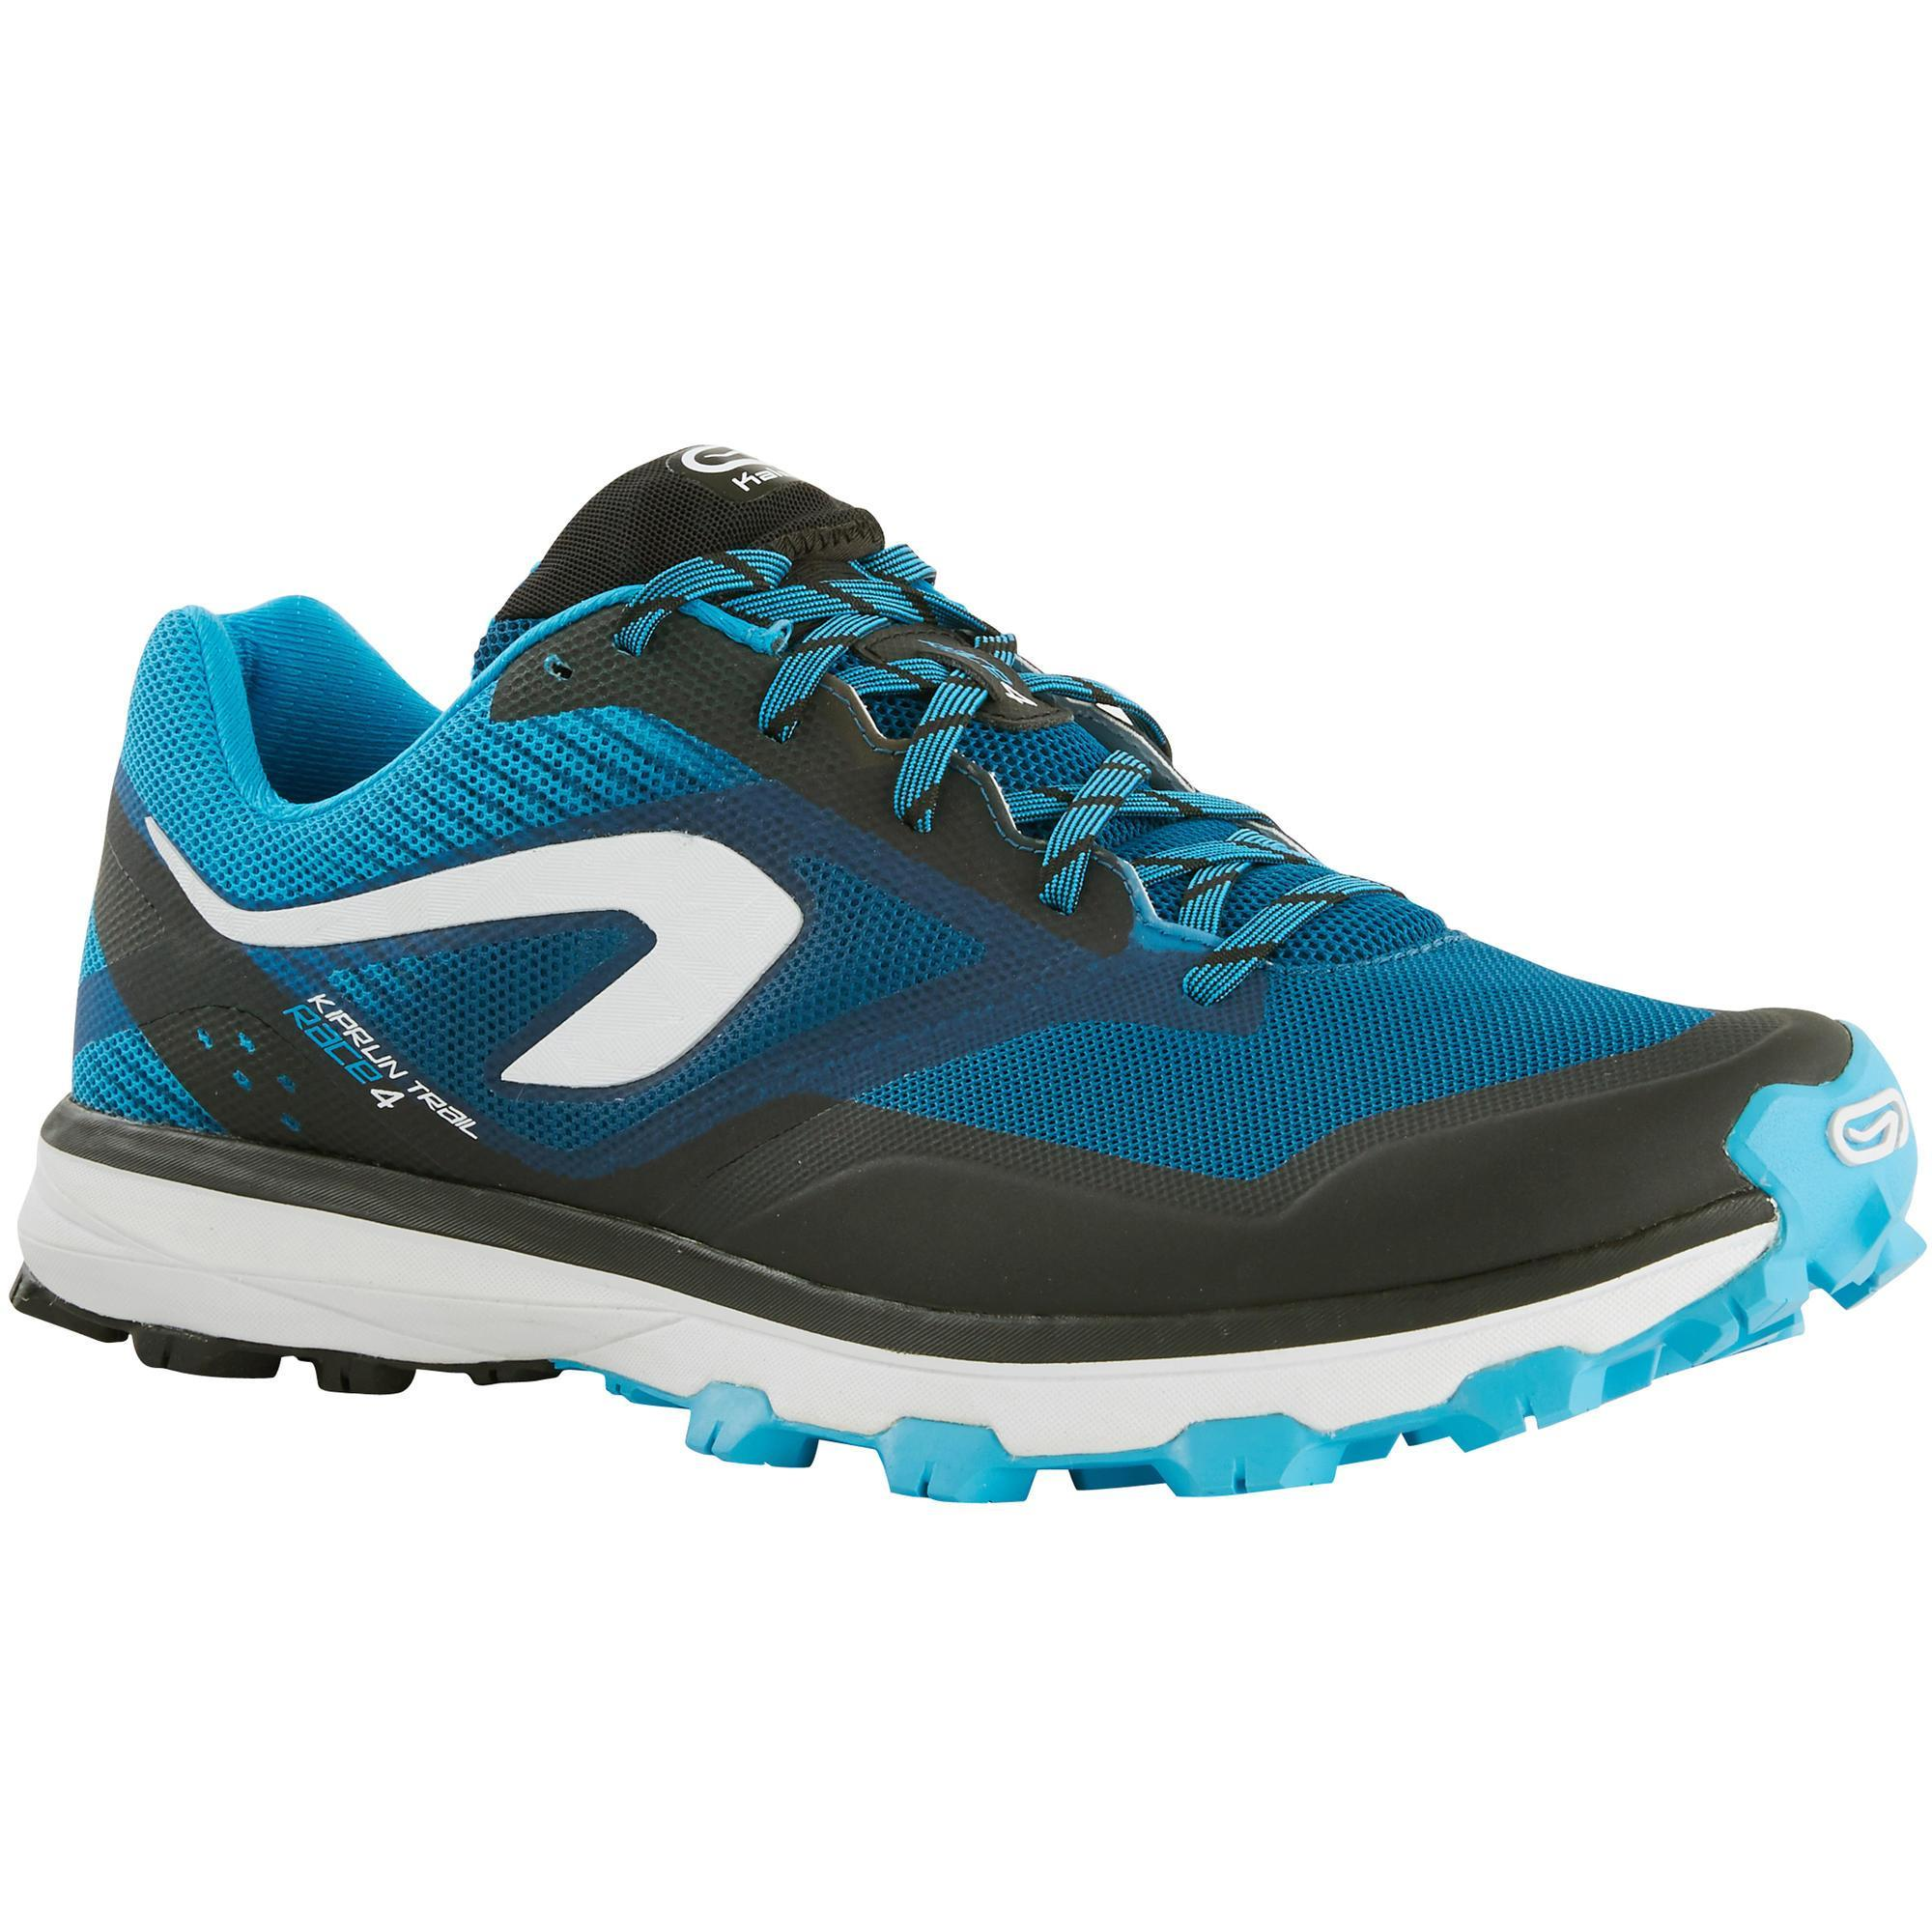 aebd9221fcc Comprar Zapatillas de Trail Running | Decathlon